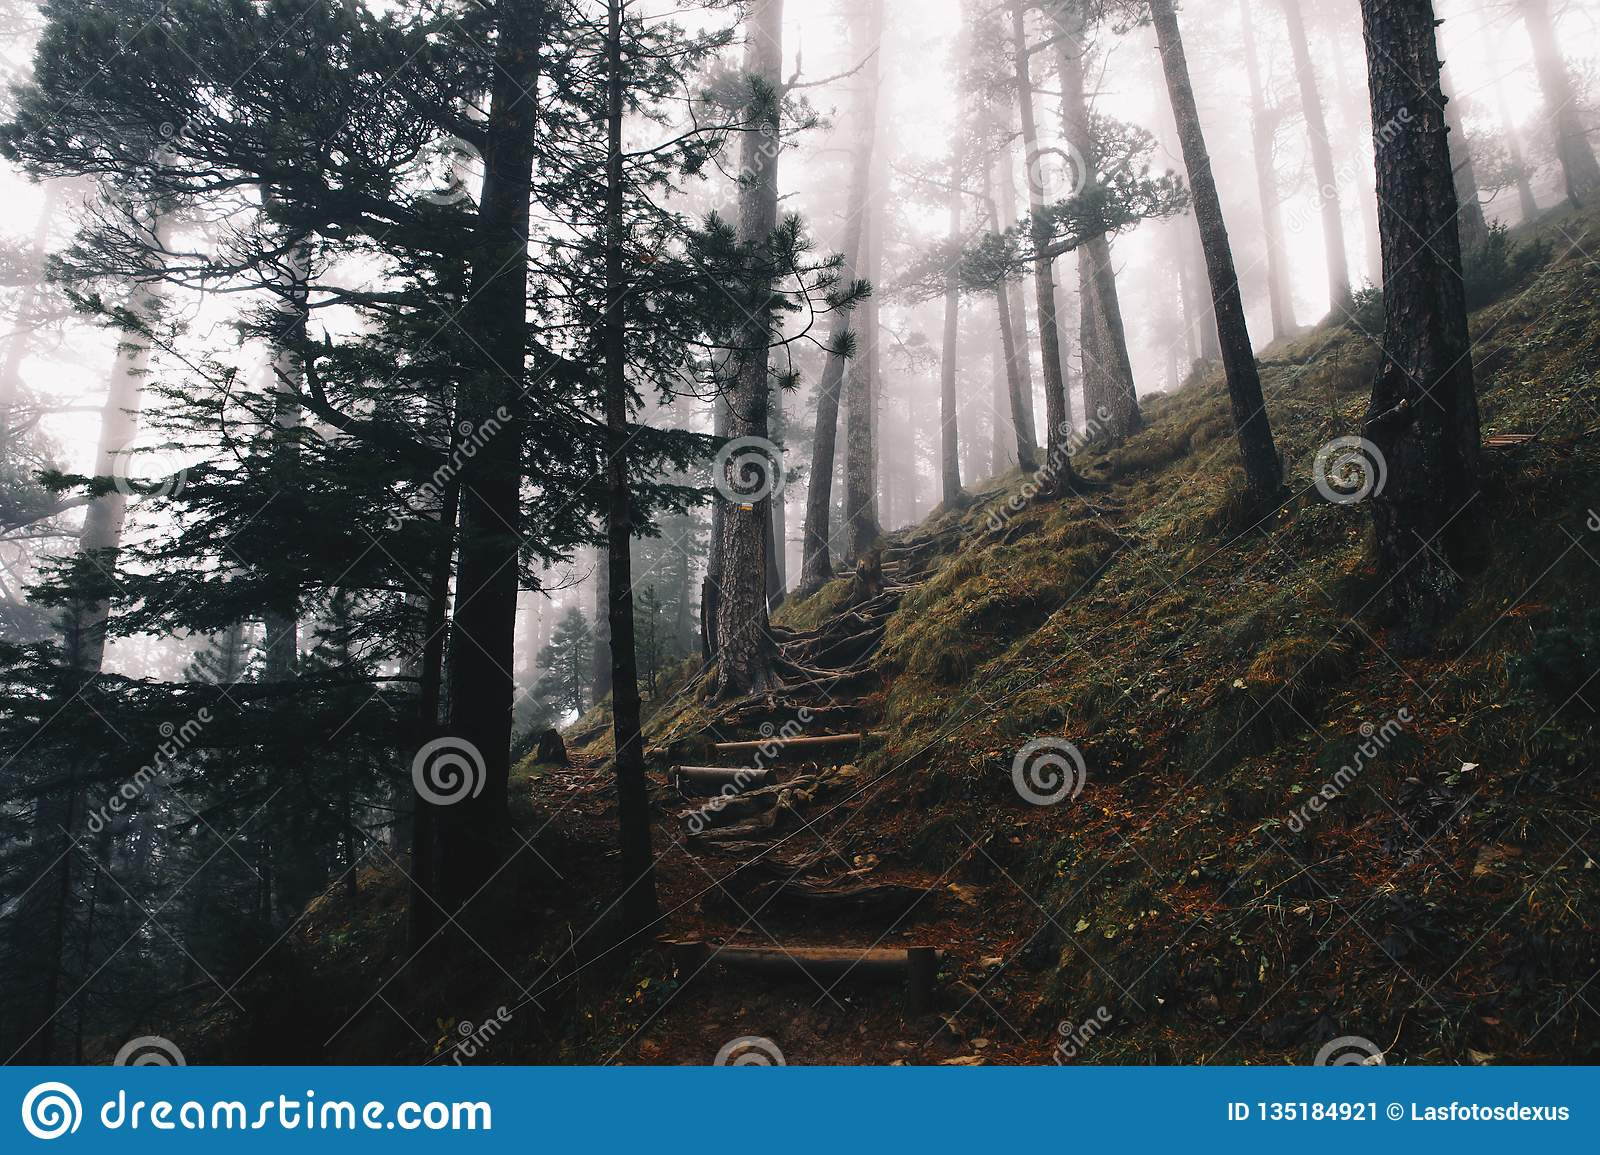 Forest landscape at winter with a foggy environment background